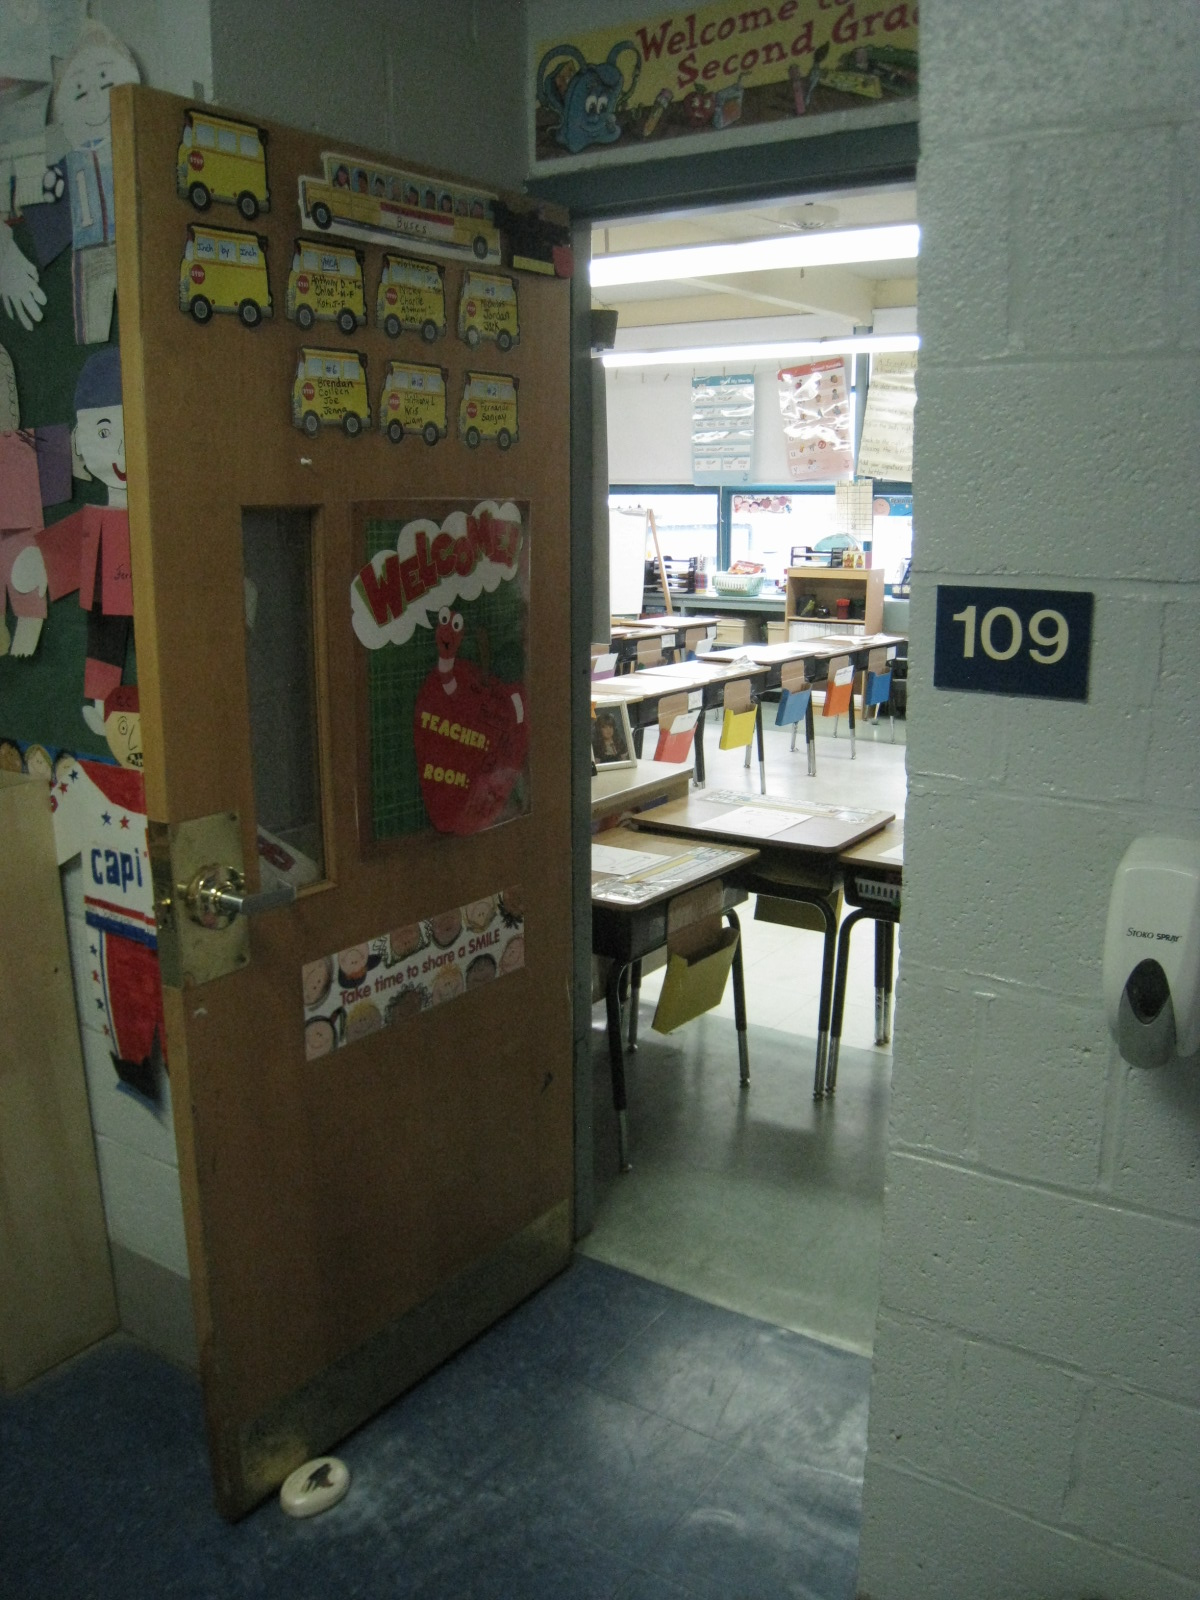 Room 109 Memorial School, Burlington MA